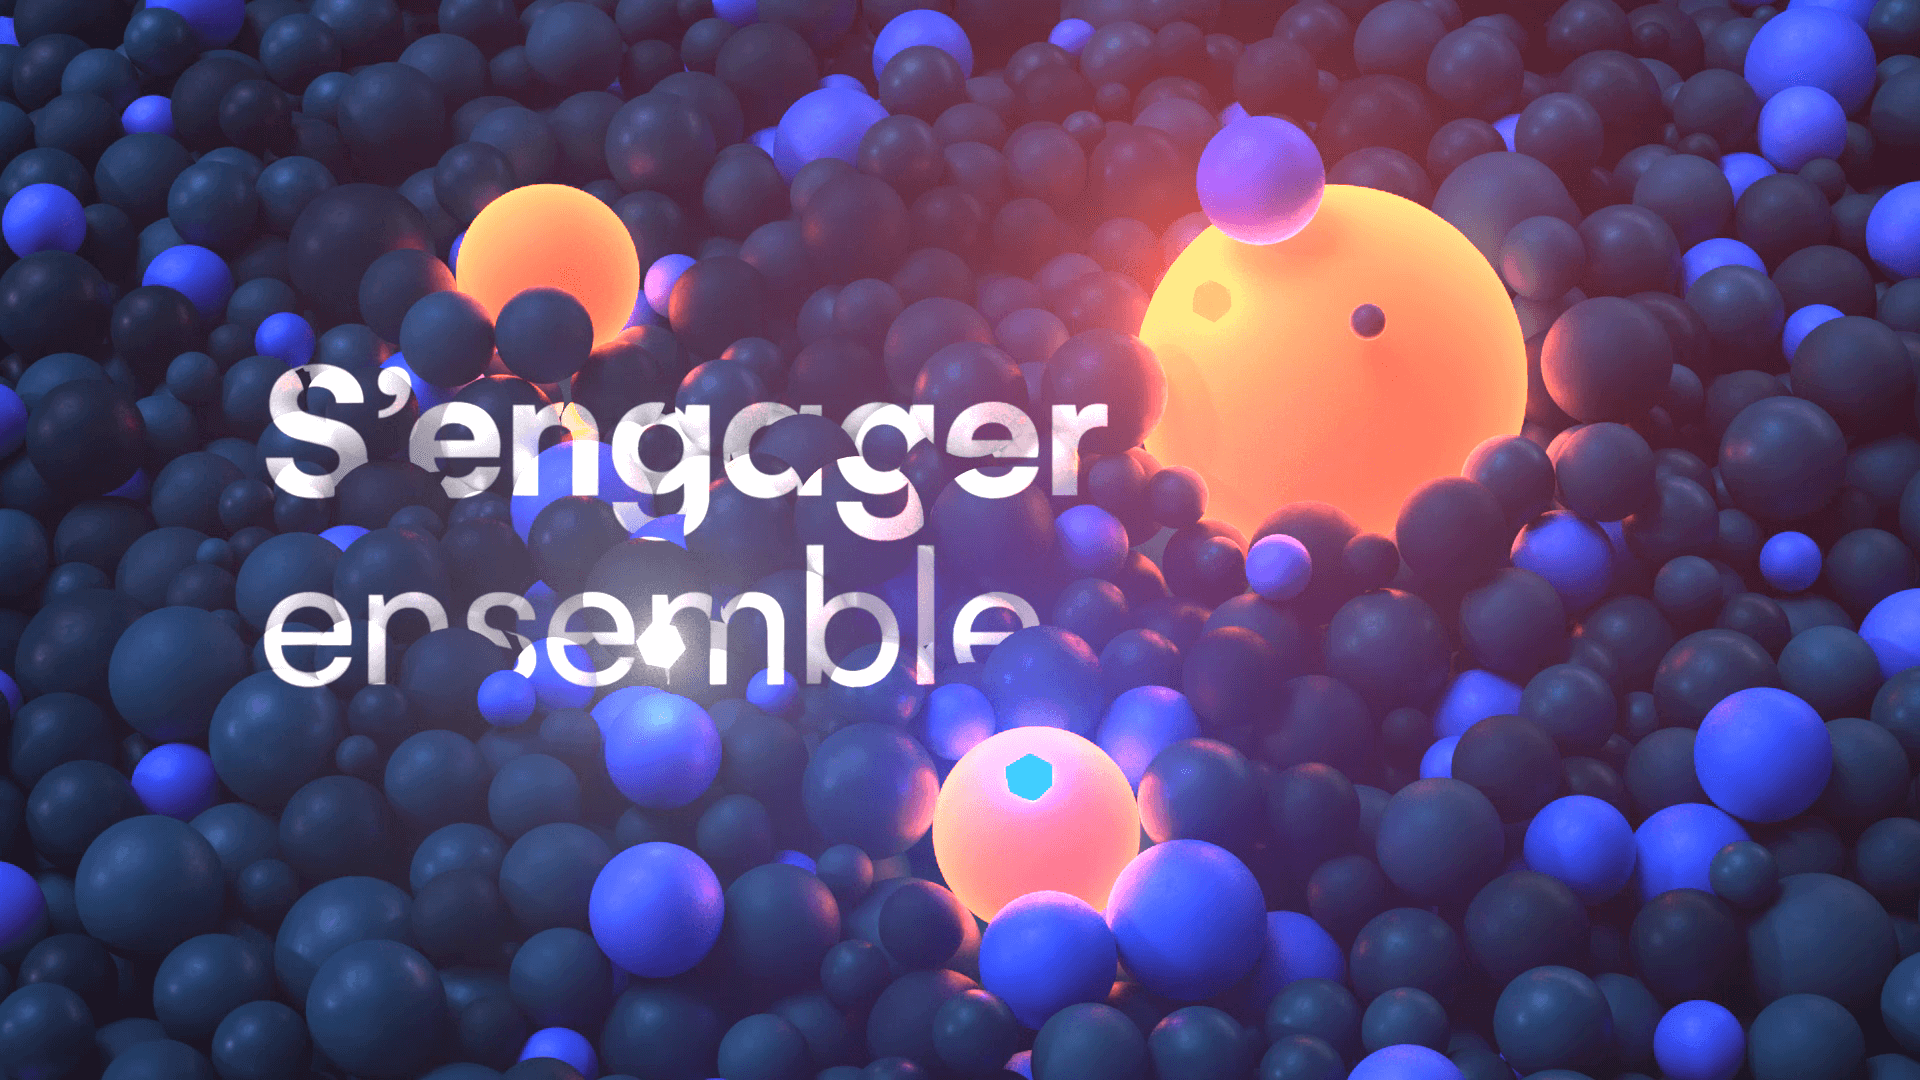 Glowing big 3D spheres emerging from below hundred of small spheres